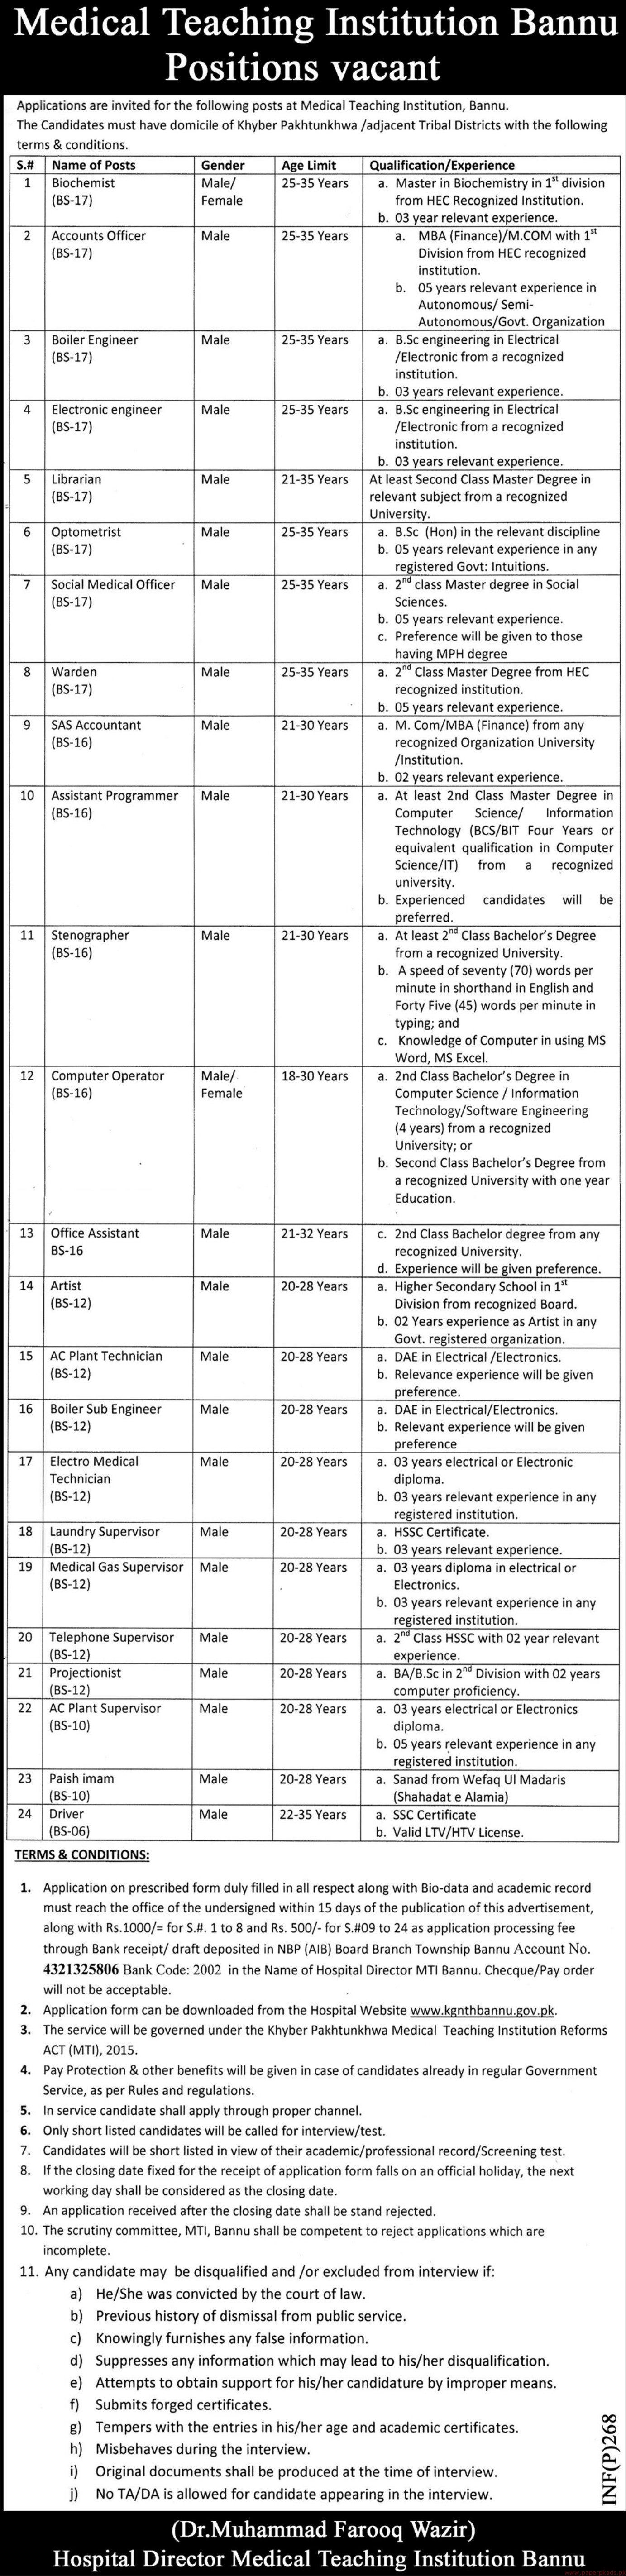 Medical Teaching Institution Bannu Jobs 2019 Latest